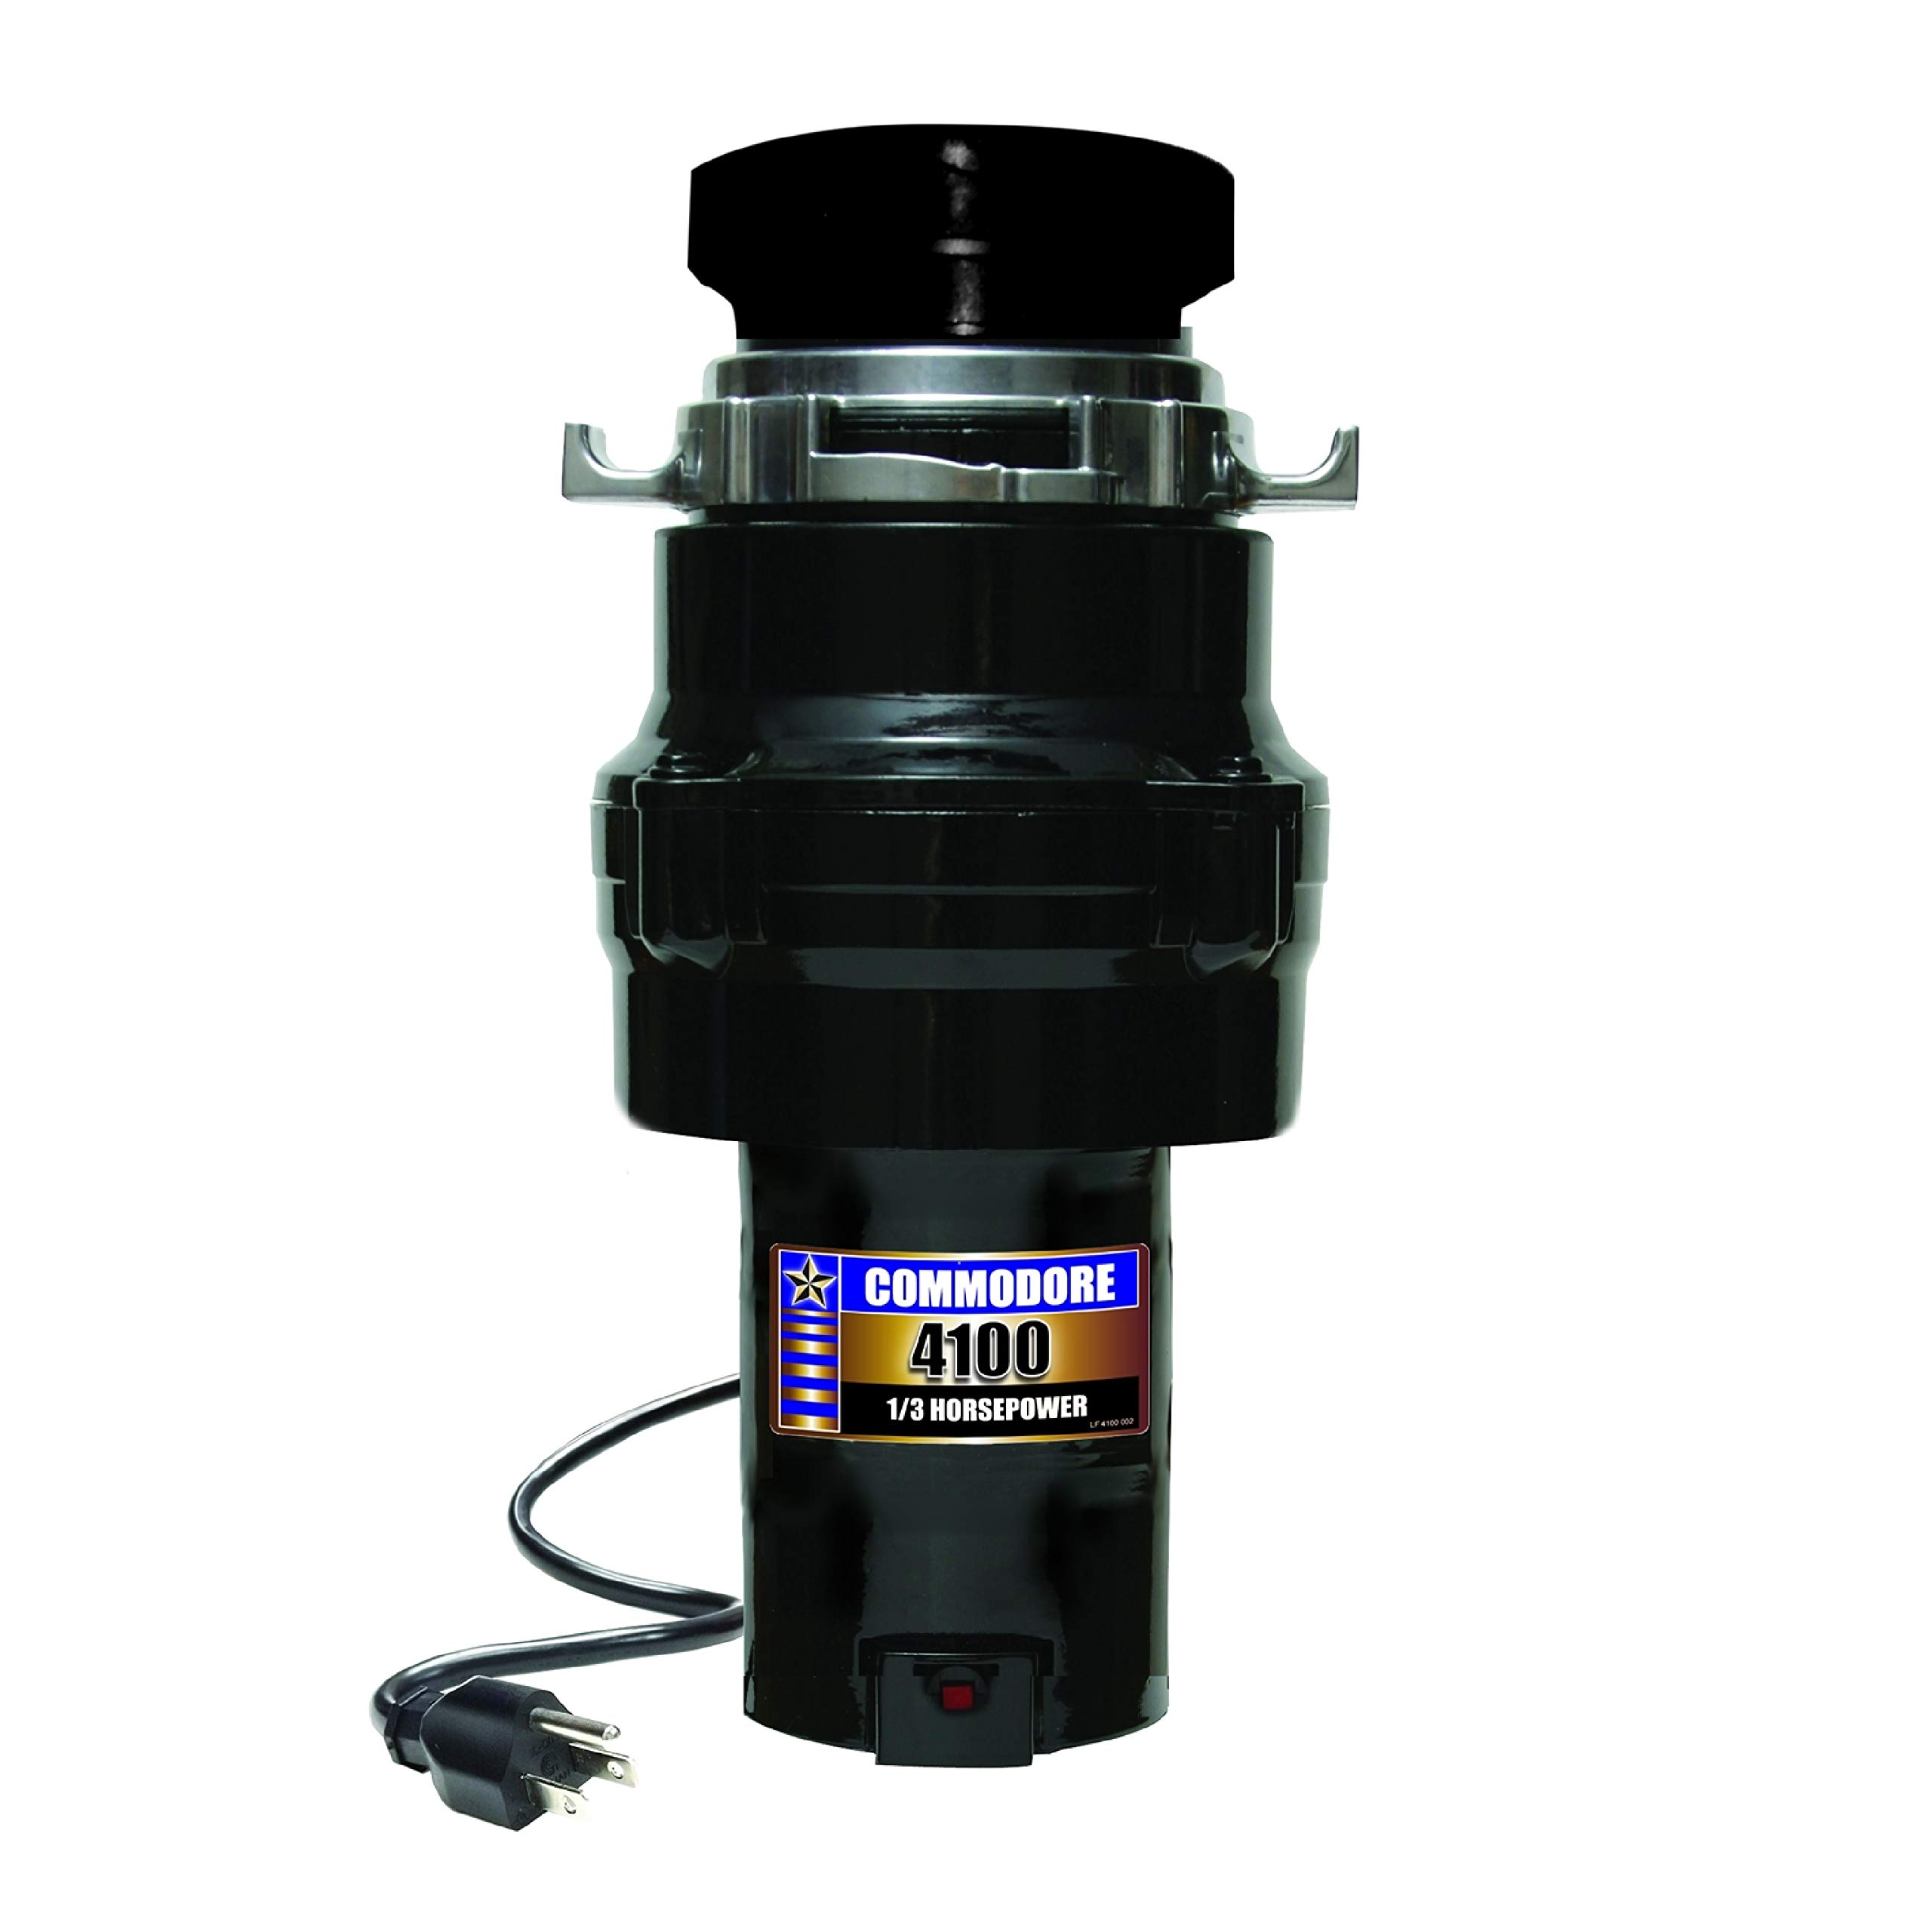 Commodore 10-US-CD-4100-AP Apartment Pack 1/3 HP Food Waste Disposer with Power Cord, Black